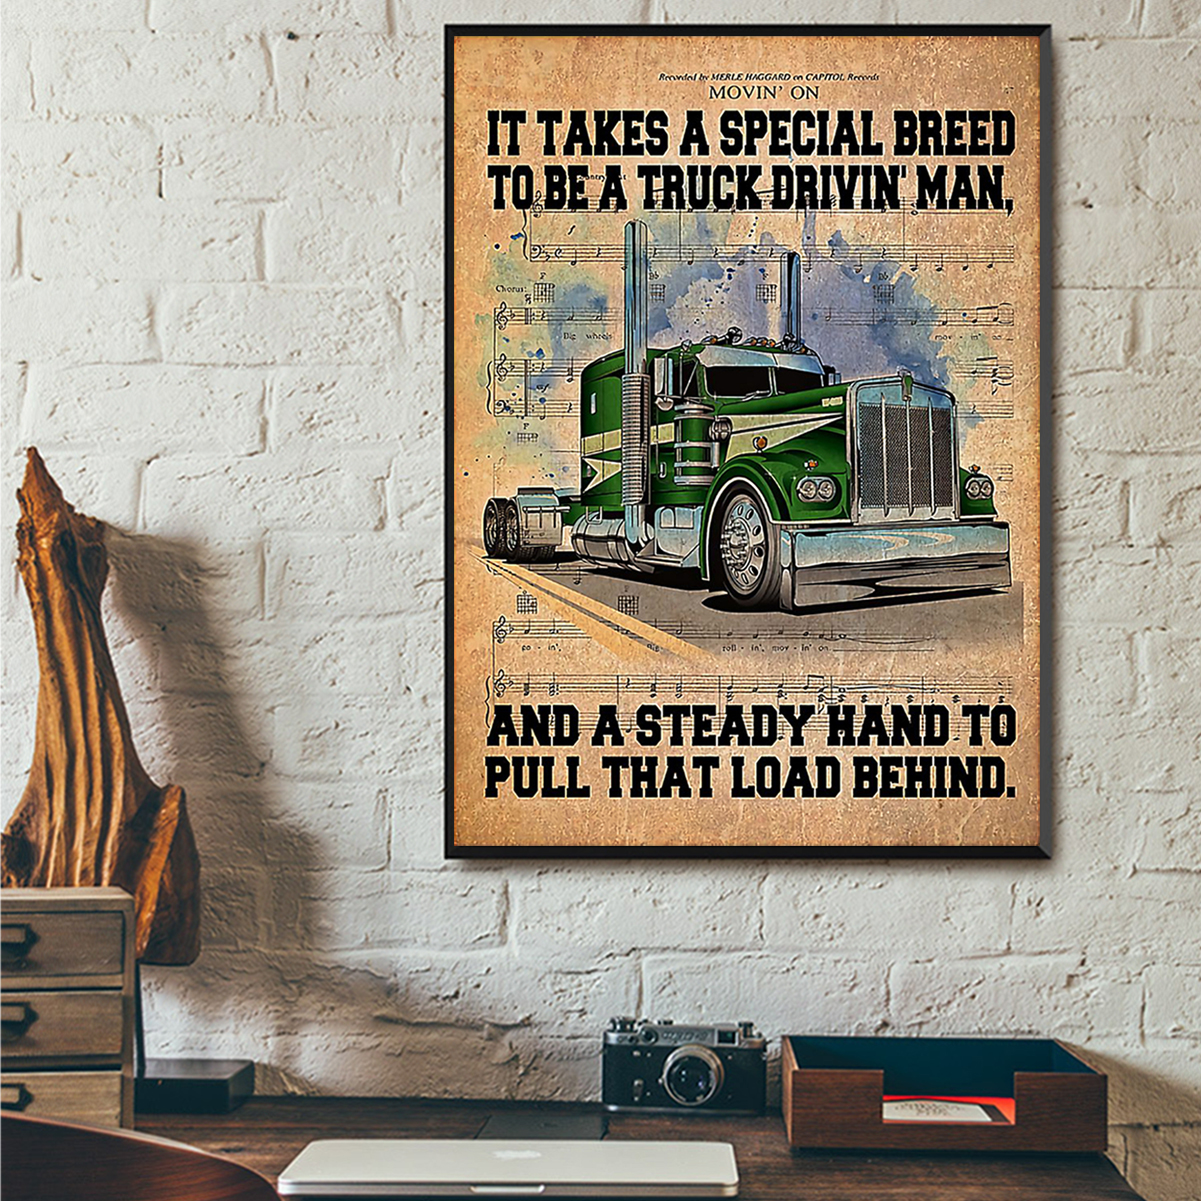 Trucker it take a special breed to be a truck drivin' man poster A3